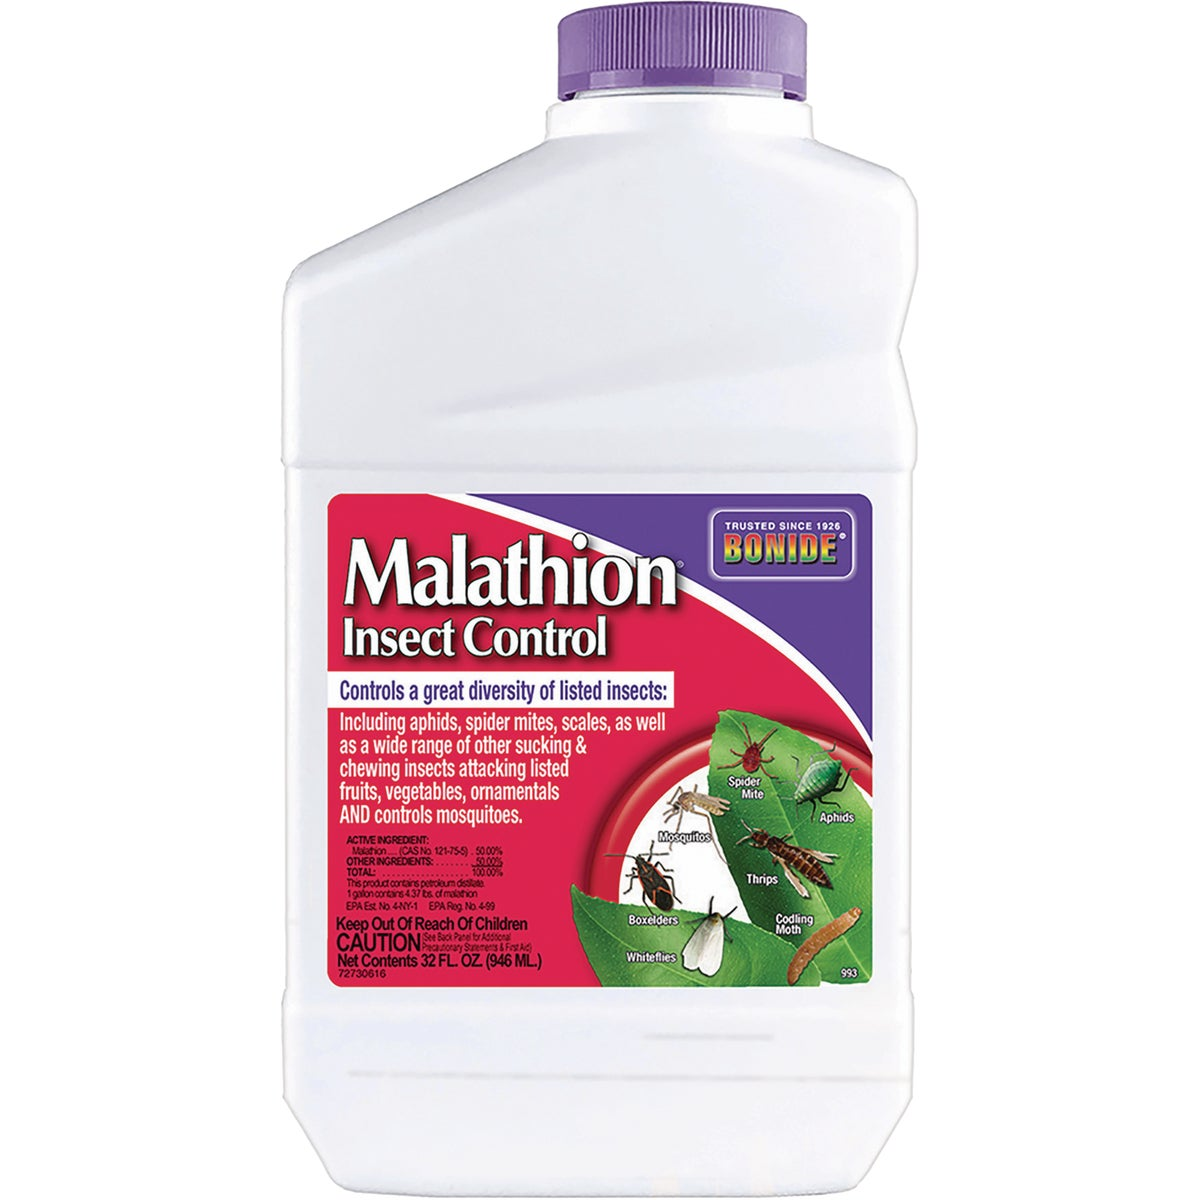 QT CONC MALATHION SPRAY - 993 by Bonide